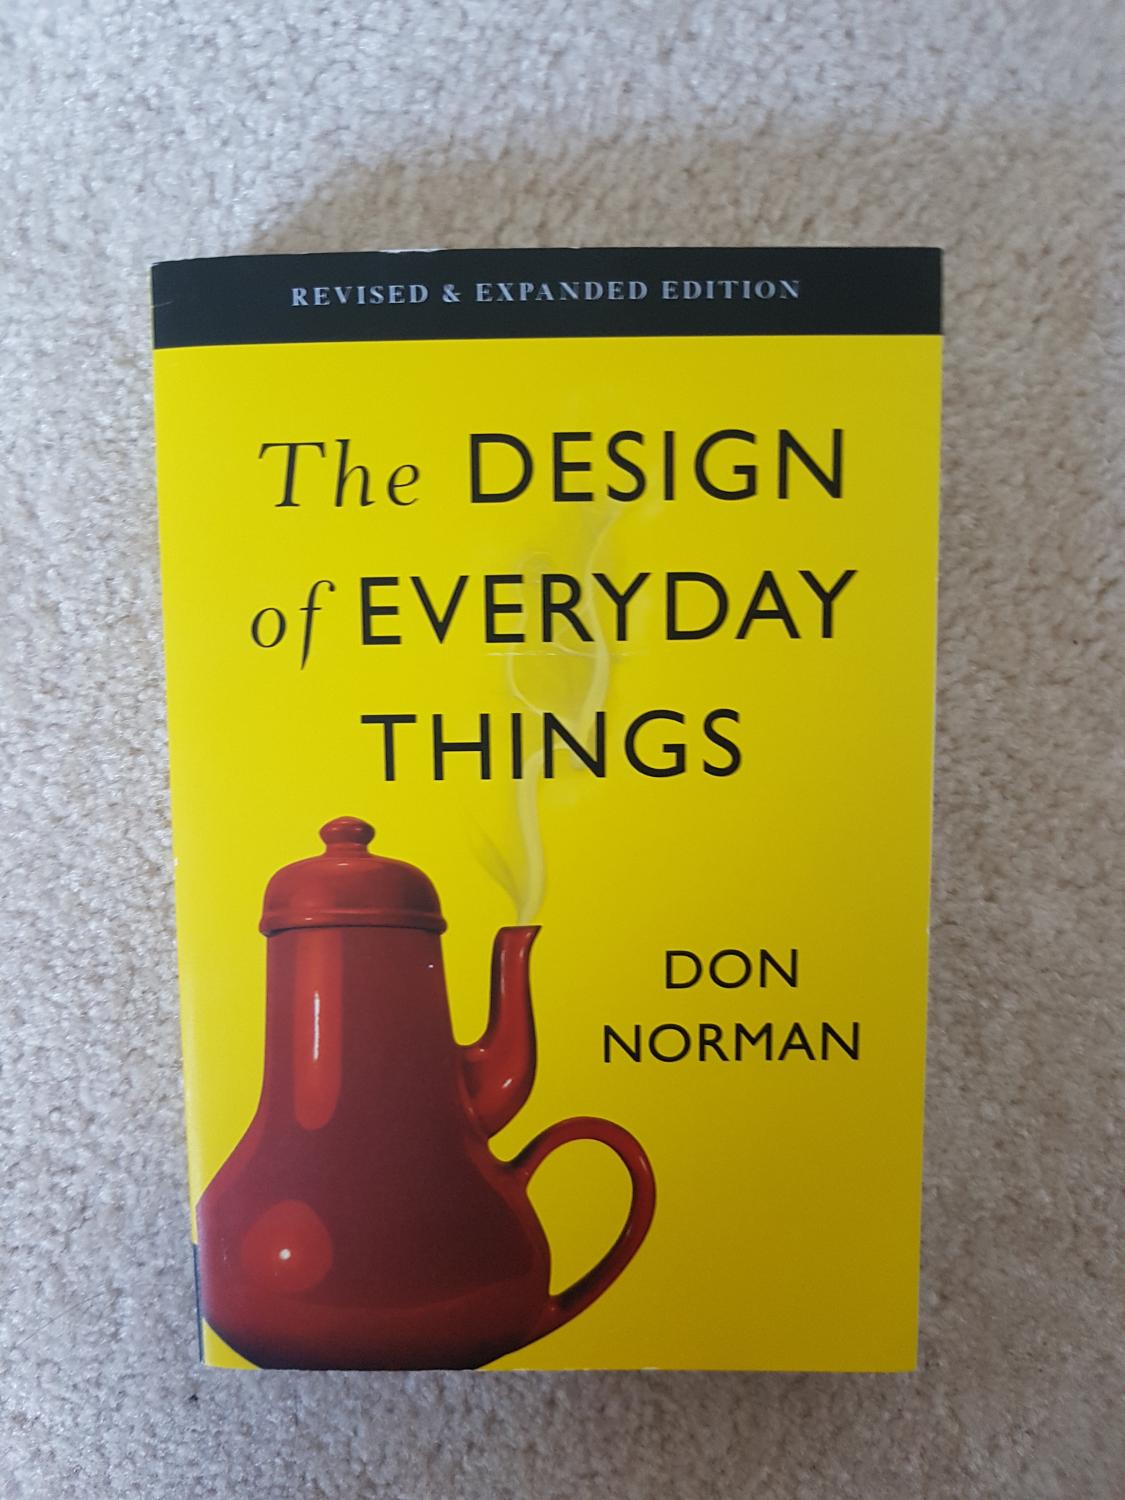 Best The Design Of Everyday Things (don Norman) for sale in Richmond,  British Columbia for 2018